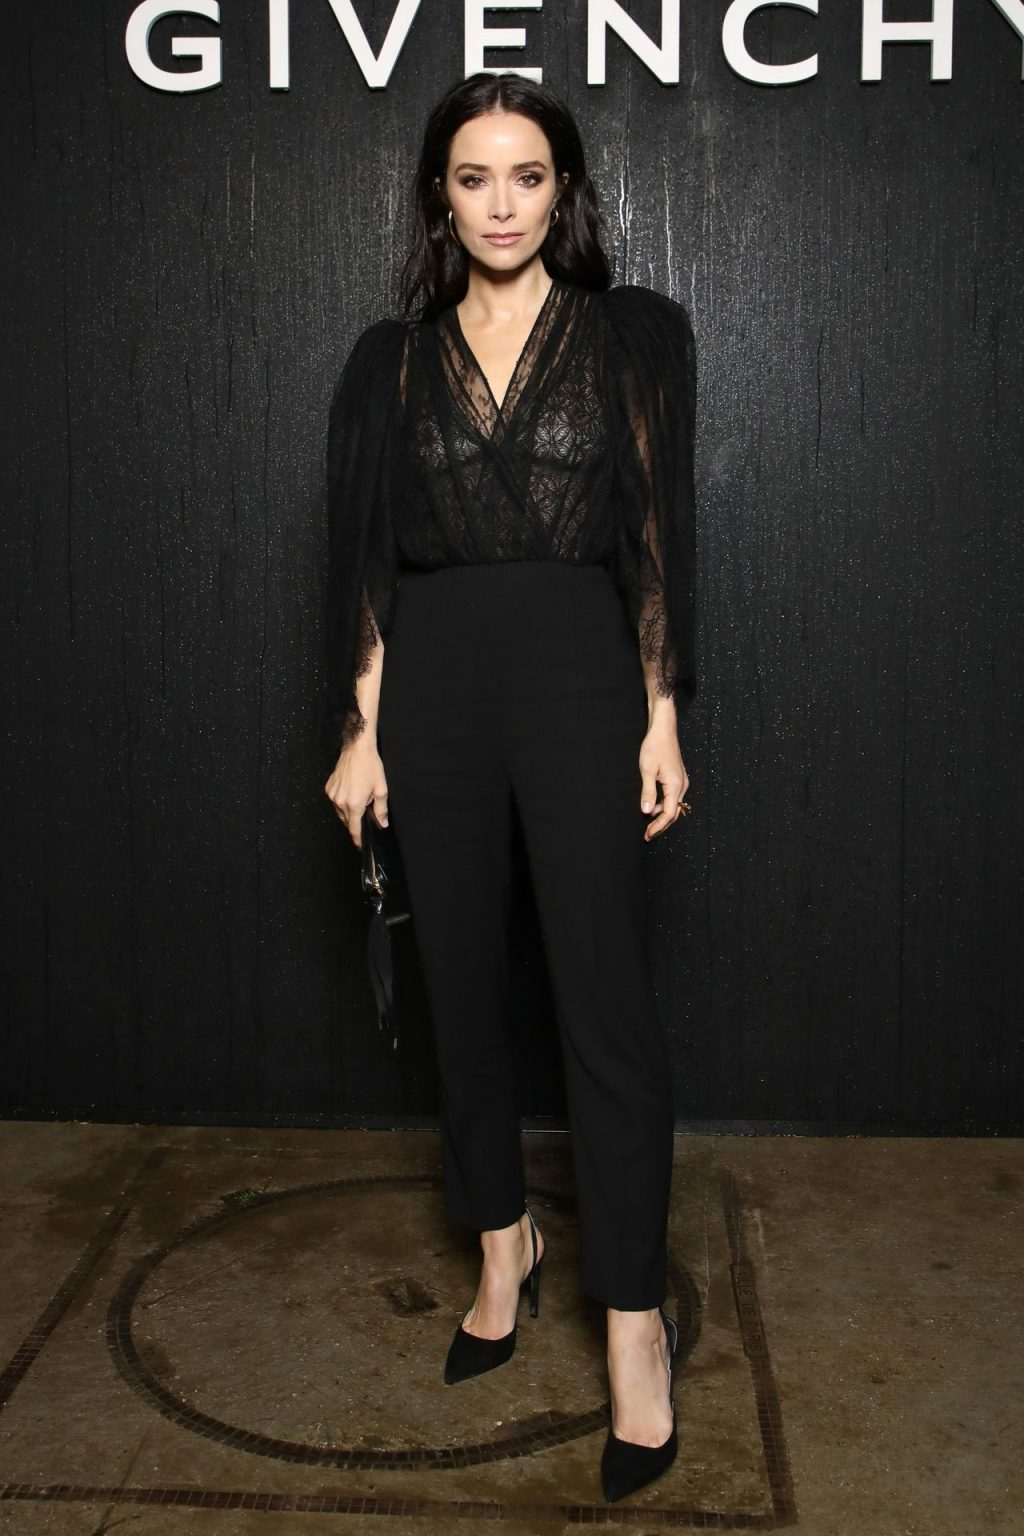 Abigail Spencer Shows Her Tits at the Givenchy Fashion Show (20 Photos)